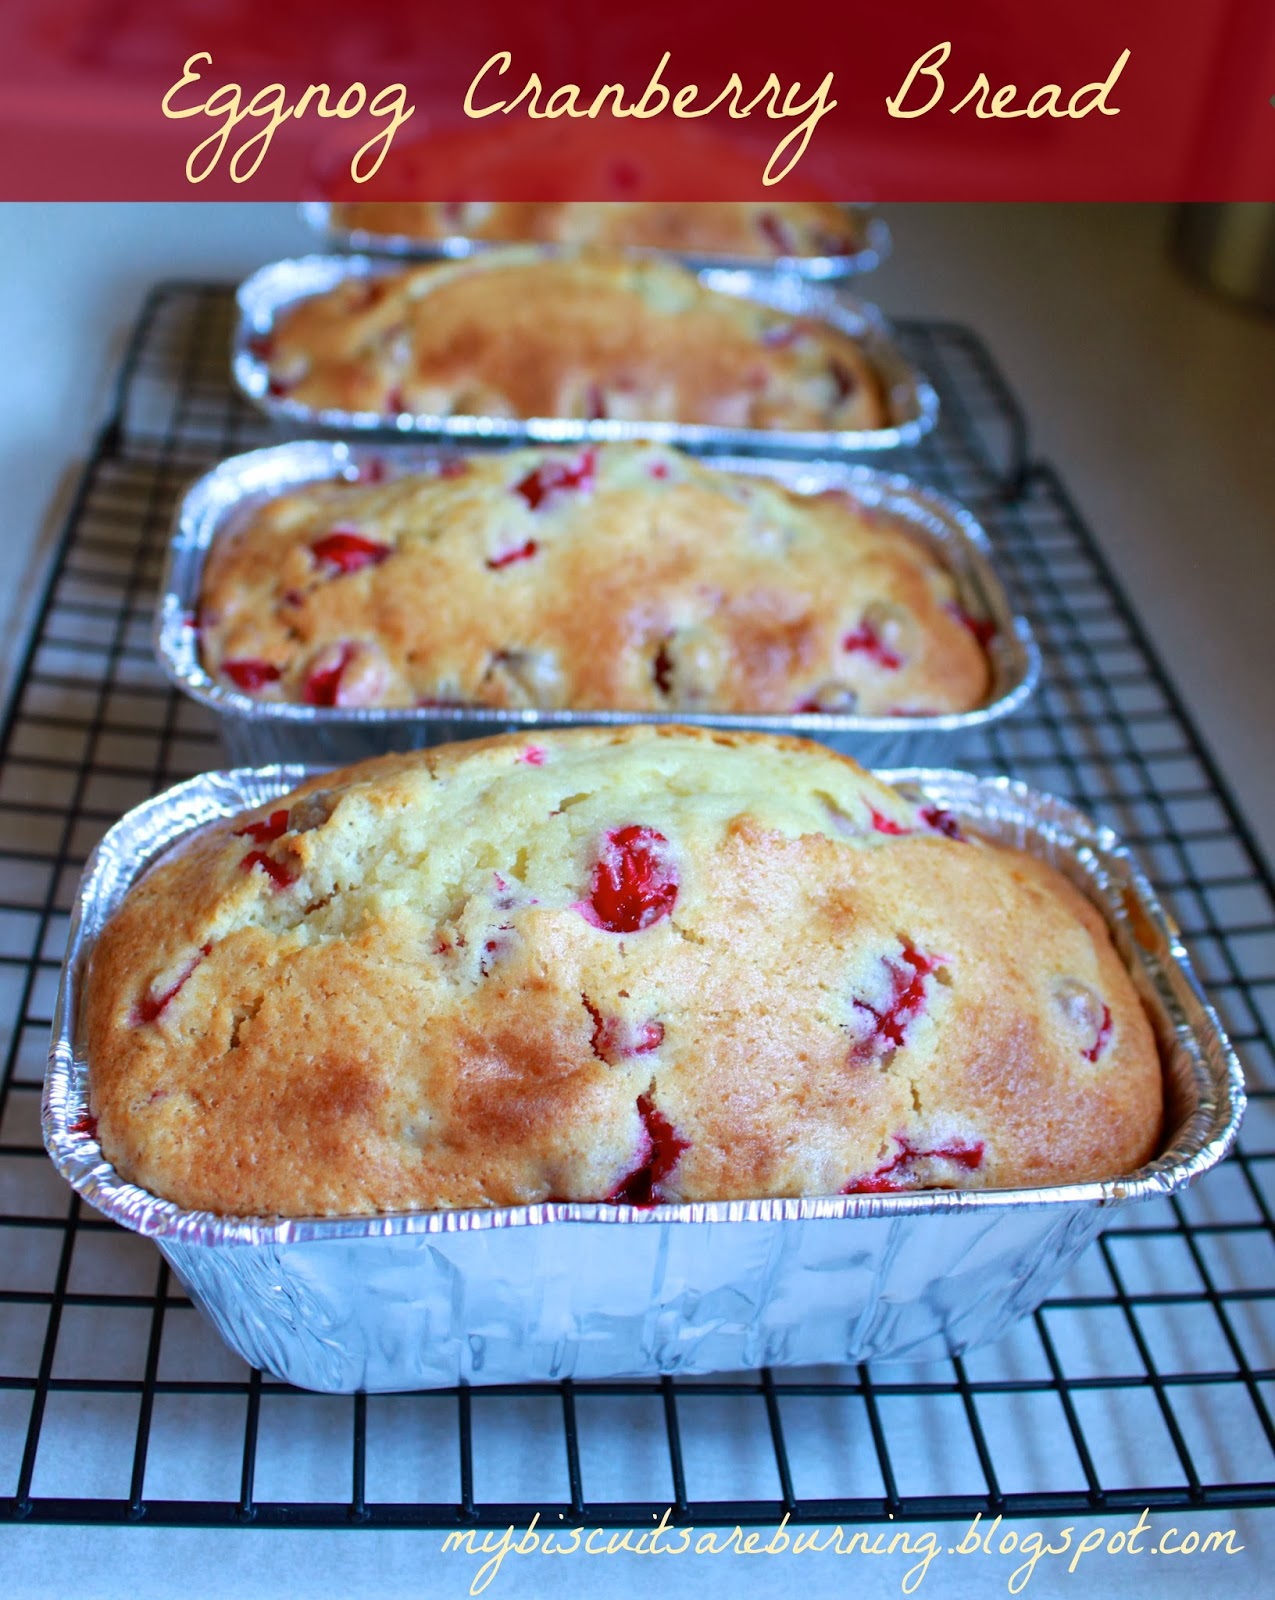 EGGNOG CRANBERRY BREAD MY BISCUITS ARE BURNING